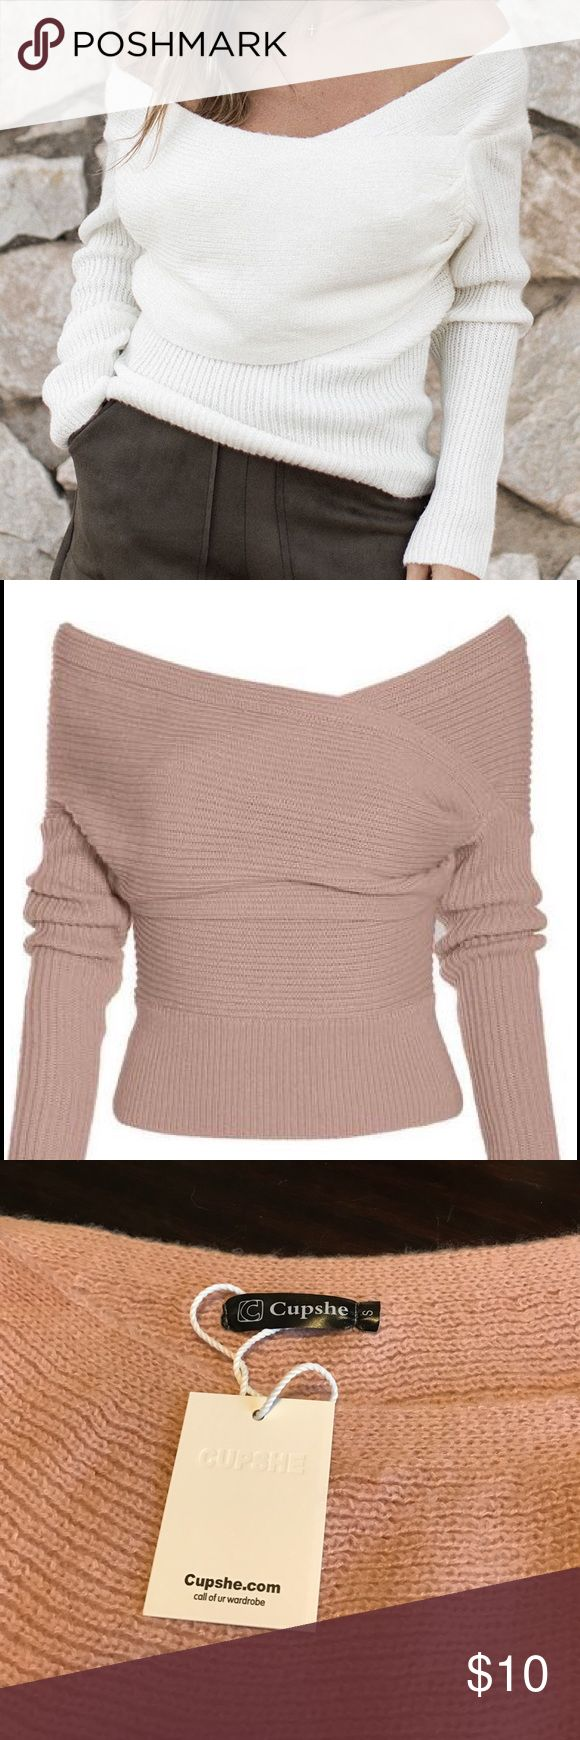 Cross Ribbed Sweater in Apricot Apricot cross ribbed knit sweater by Cupshe. New with original tags, never worn! Drape sweeps across front and gathers at the side. Wide neckline. First image is from manufacturers website and shows style, other images show color. Size small. As an extra small, I was hoping it would fit me, but it's too big. Sweaters